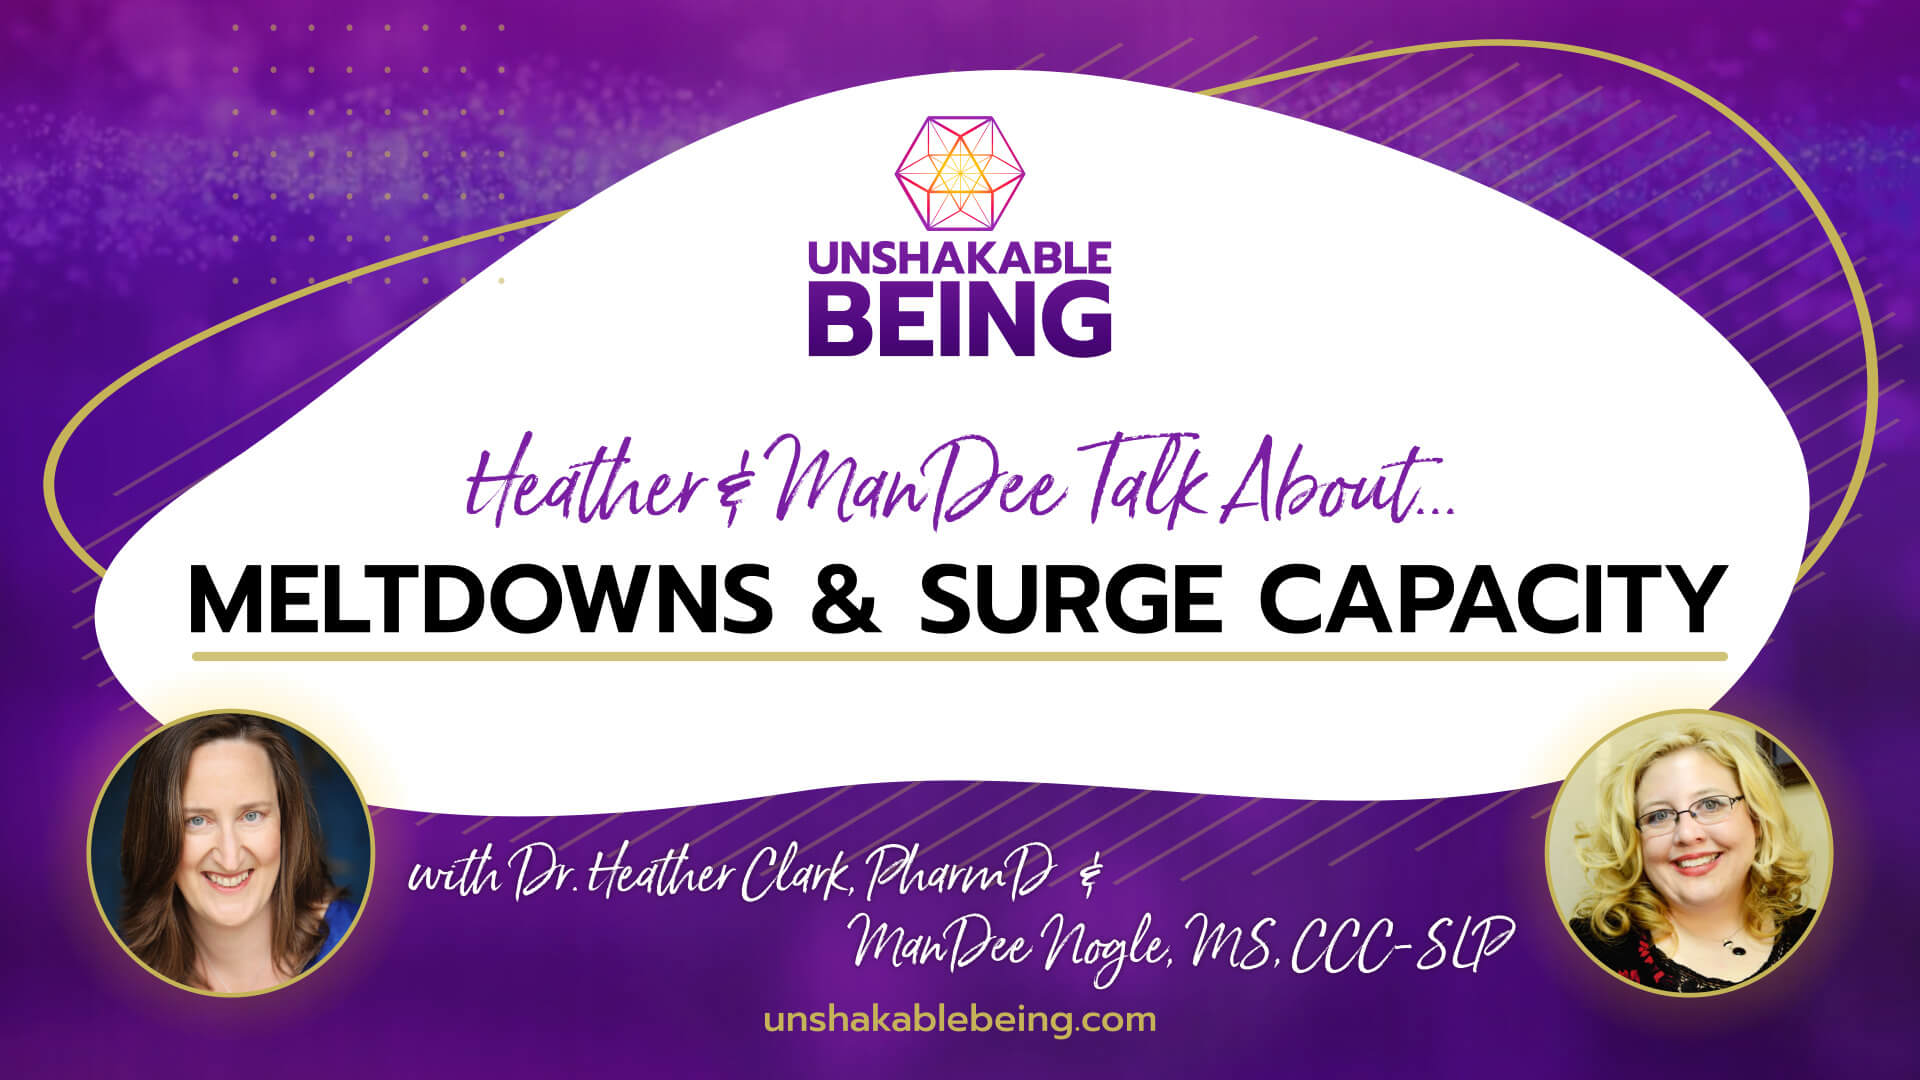 Heather and ManDee Talk About...Meltdowns & Surge Capacity